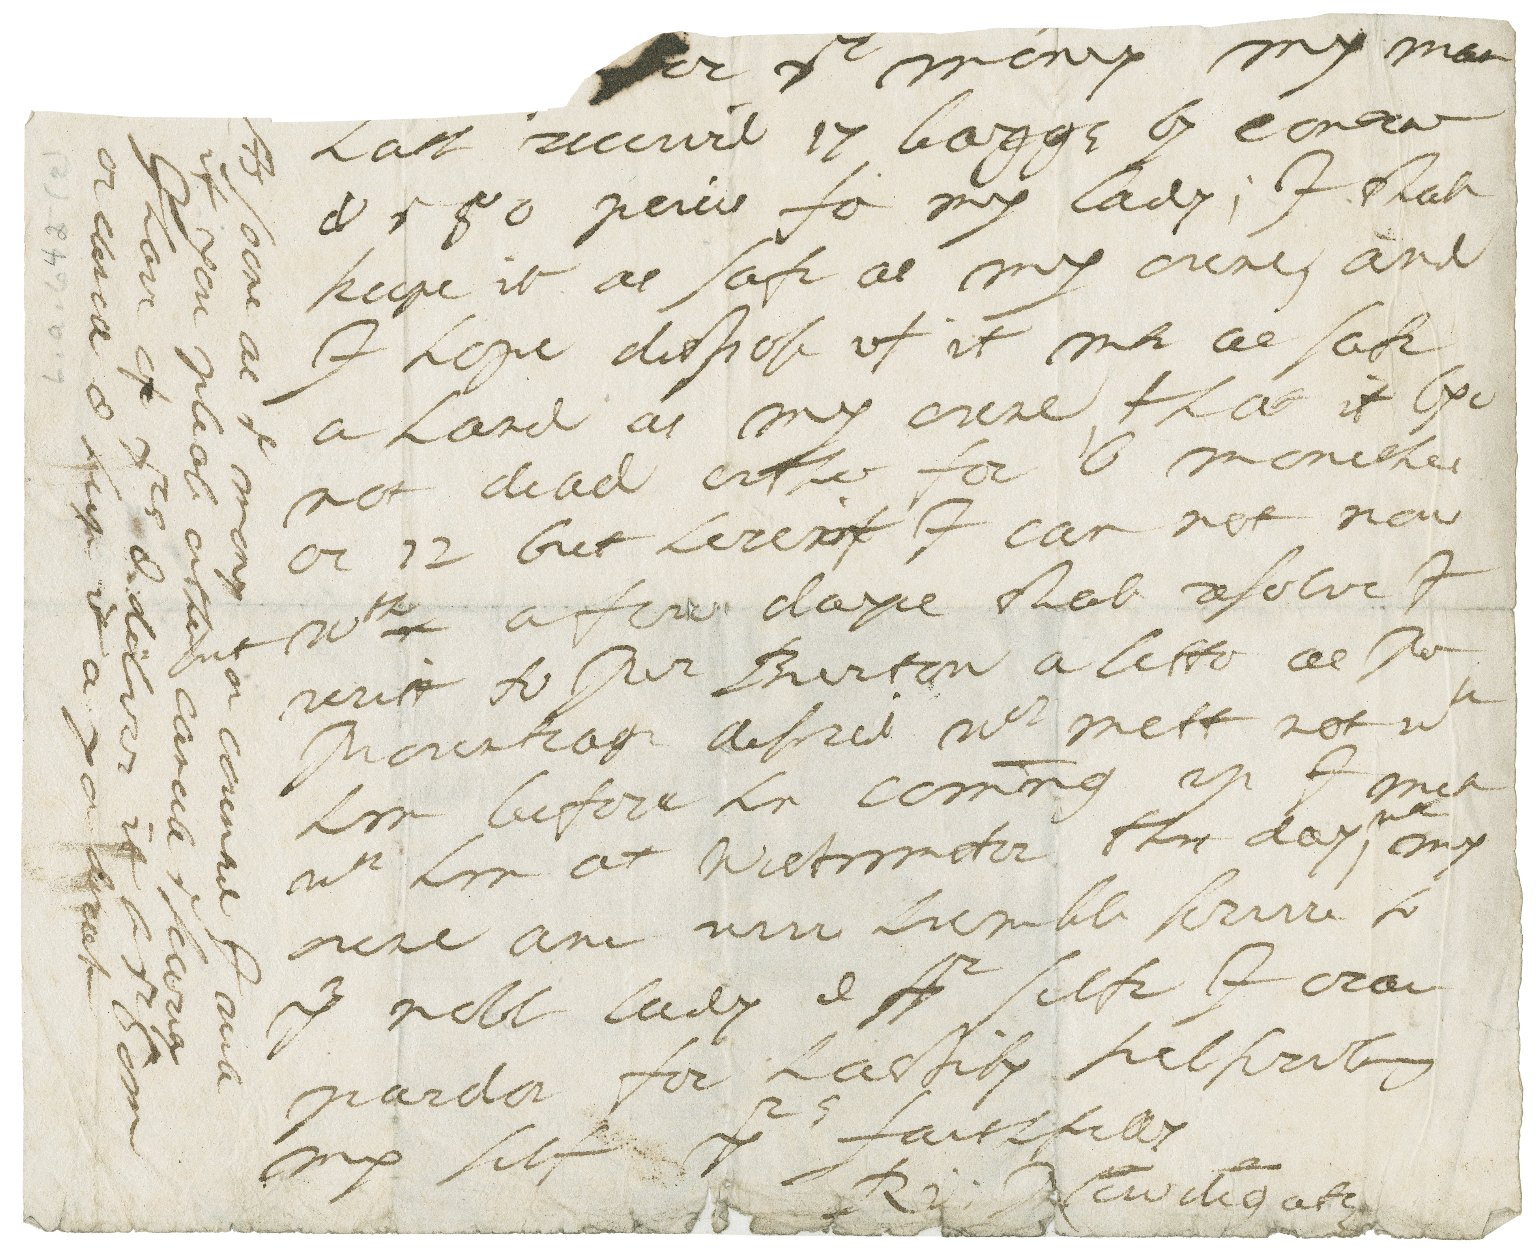 Letter from Sir Richard Newdigate to unidentified recipient